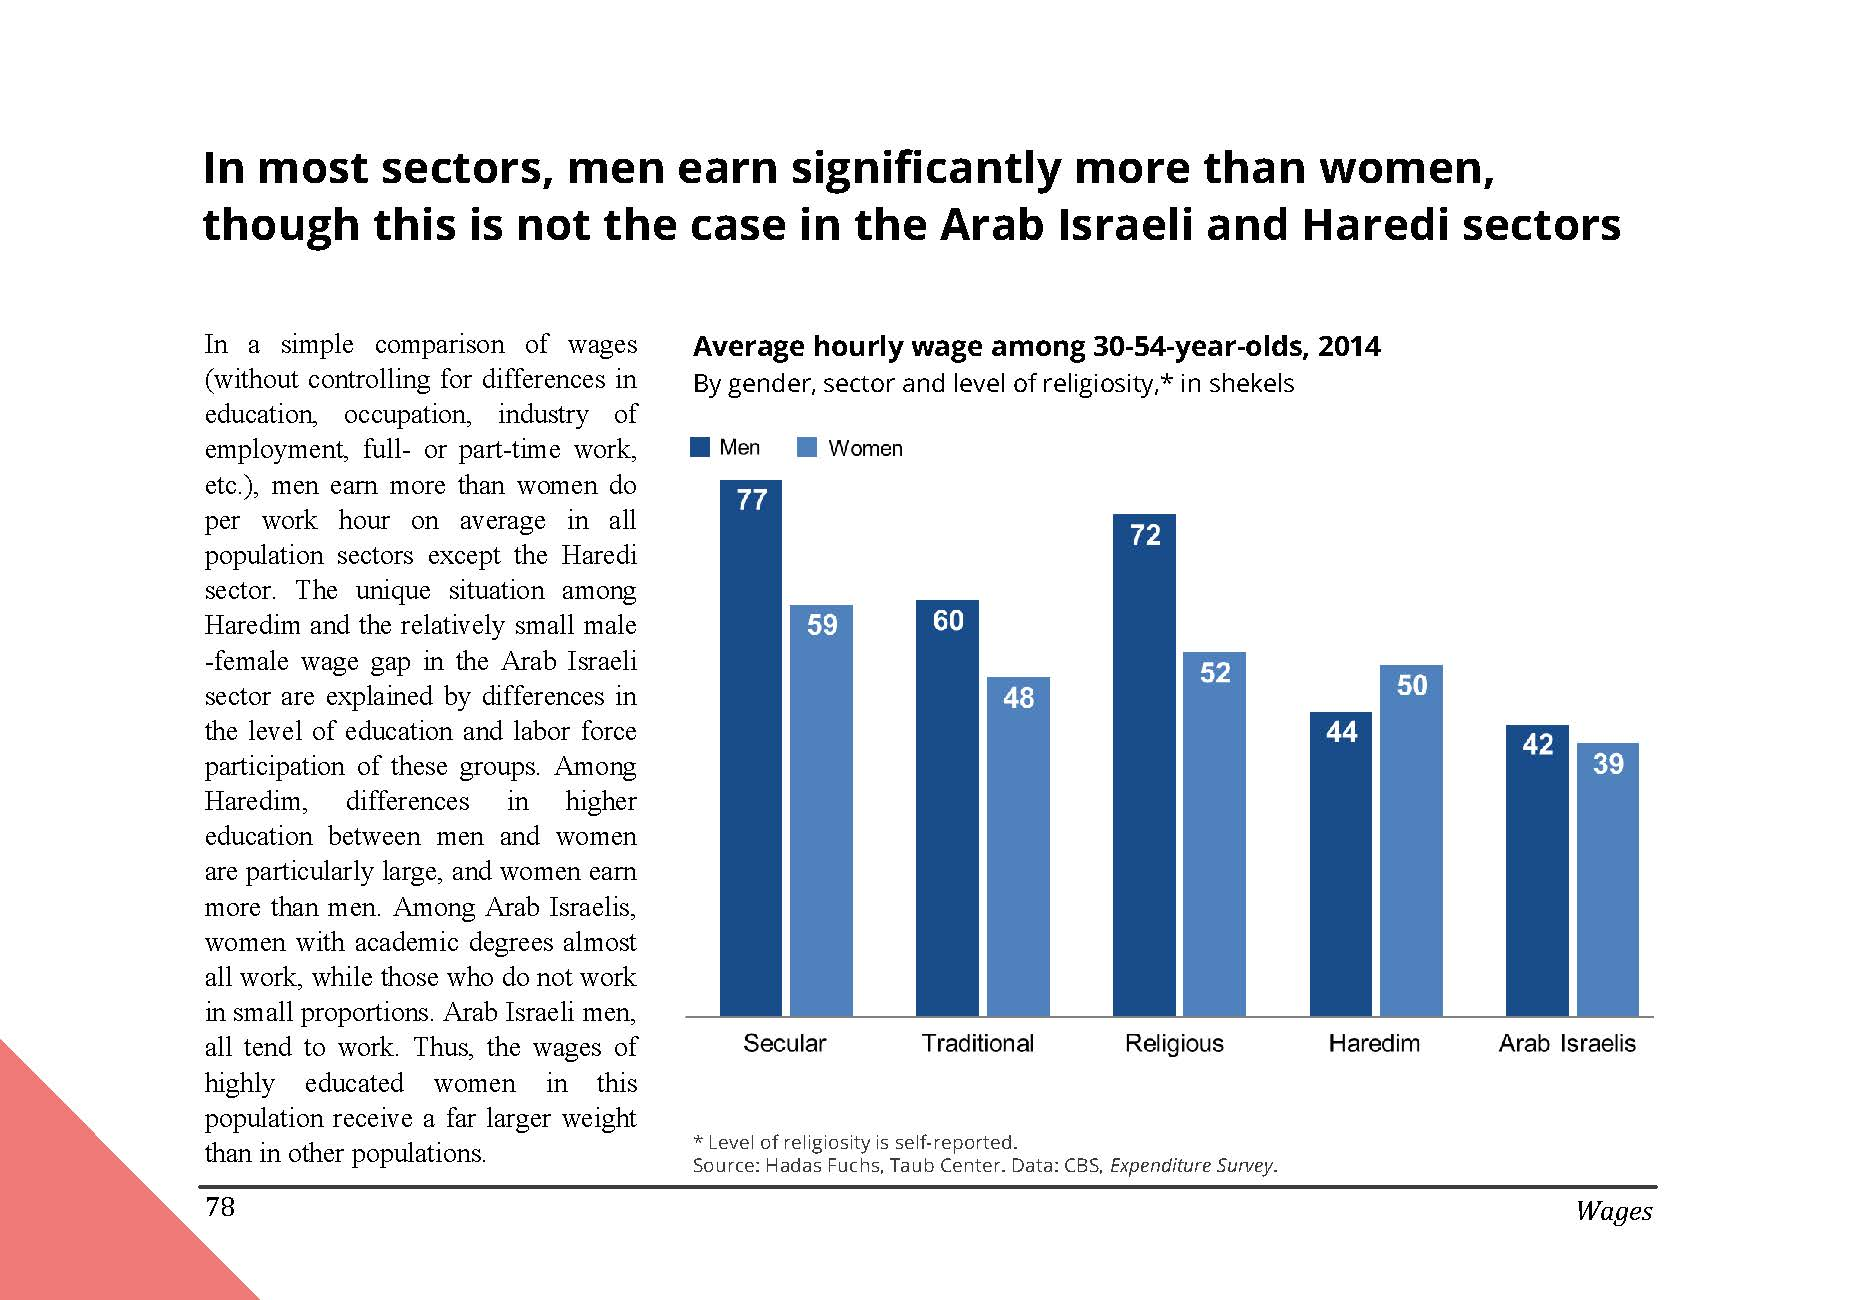 In most sectors in Israel, men earn significantly more than women, though this is not the case in the Arab Israeli and Haredi sectors